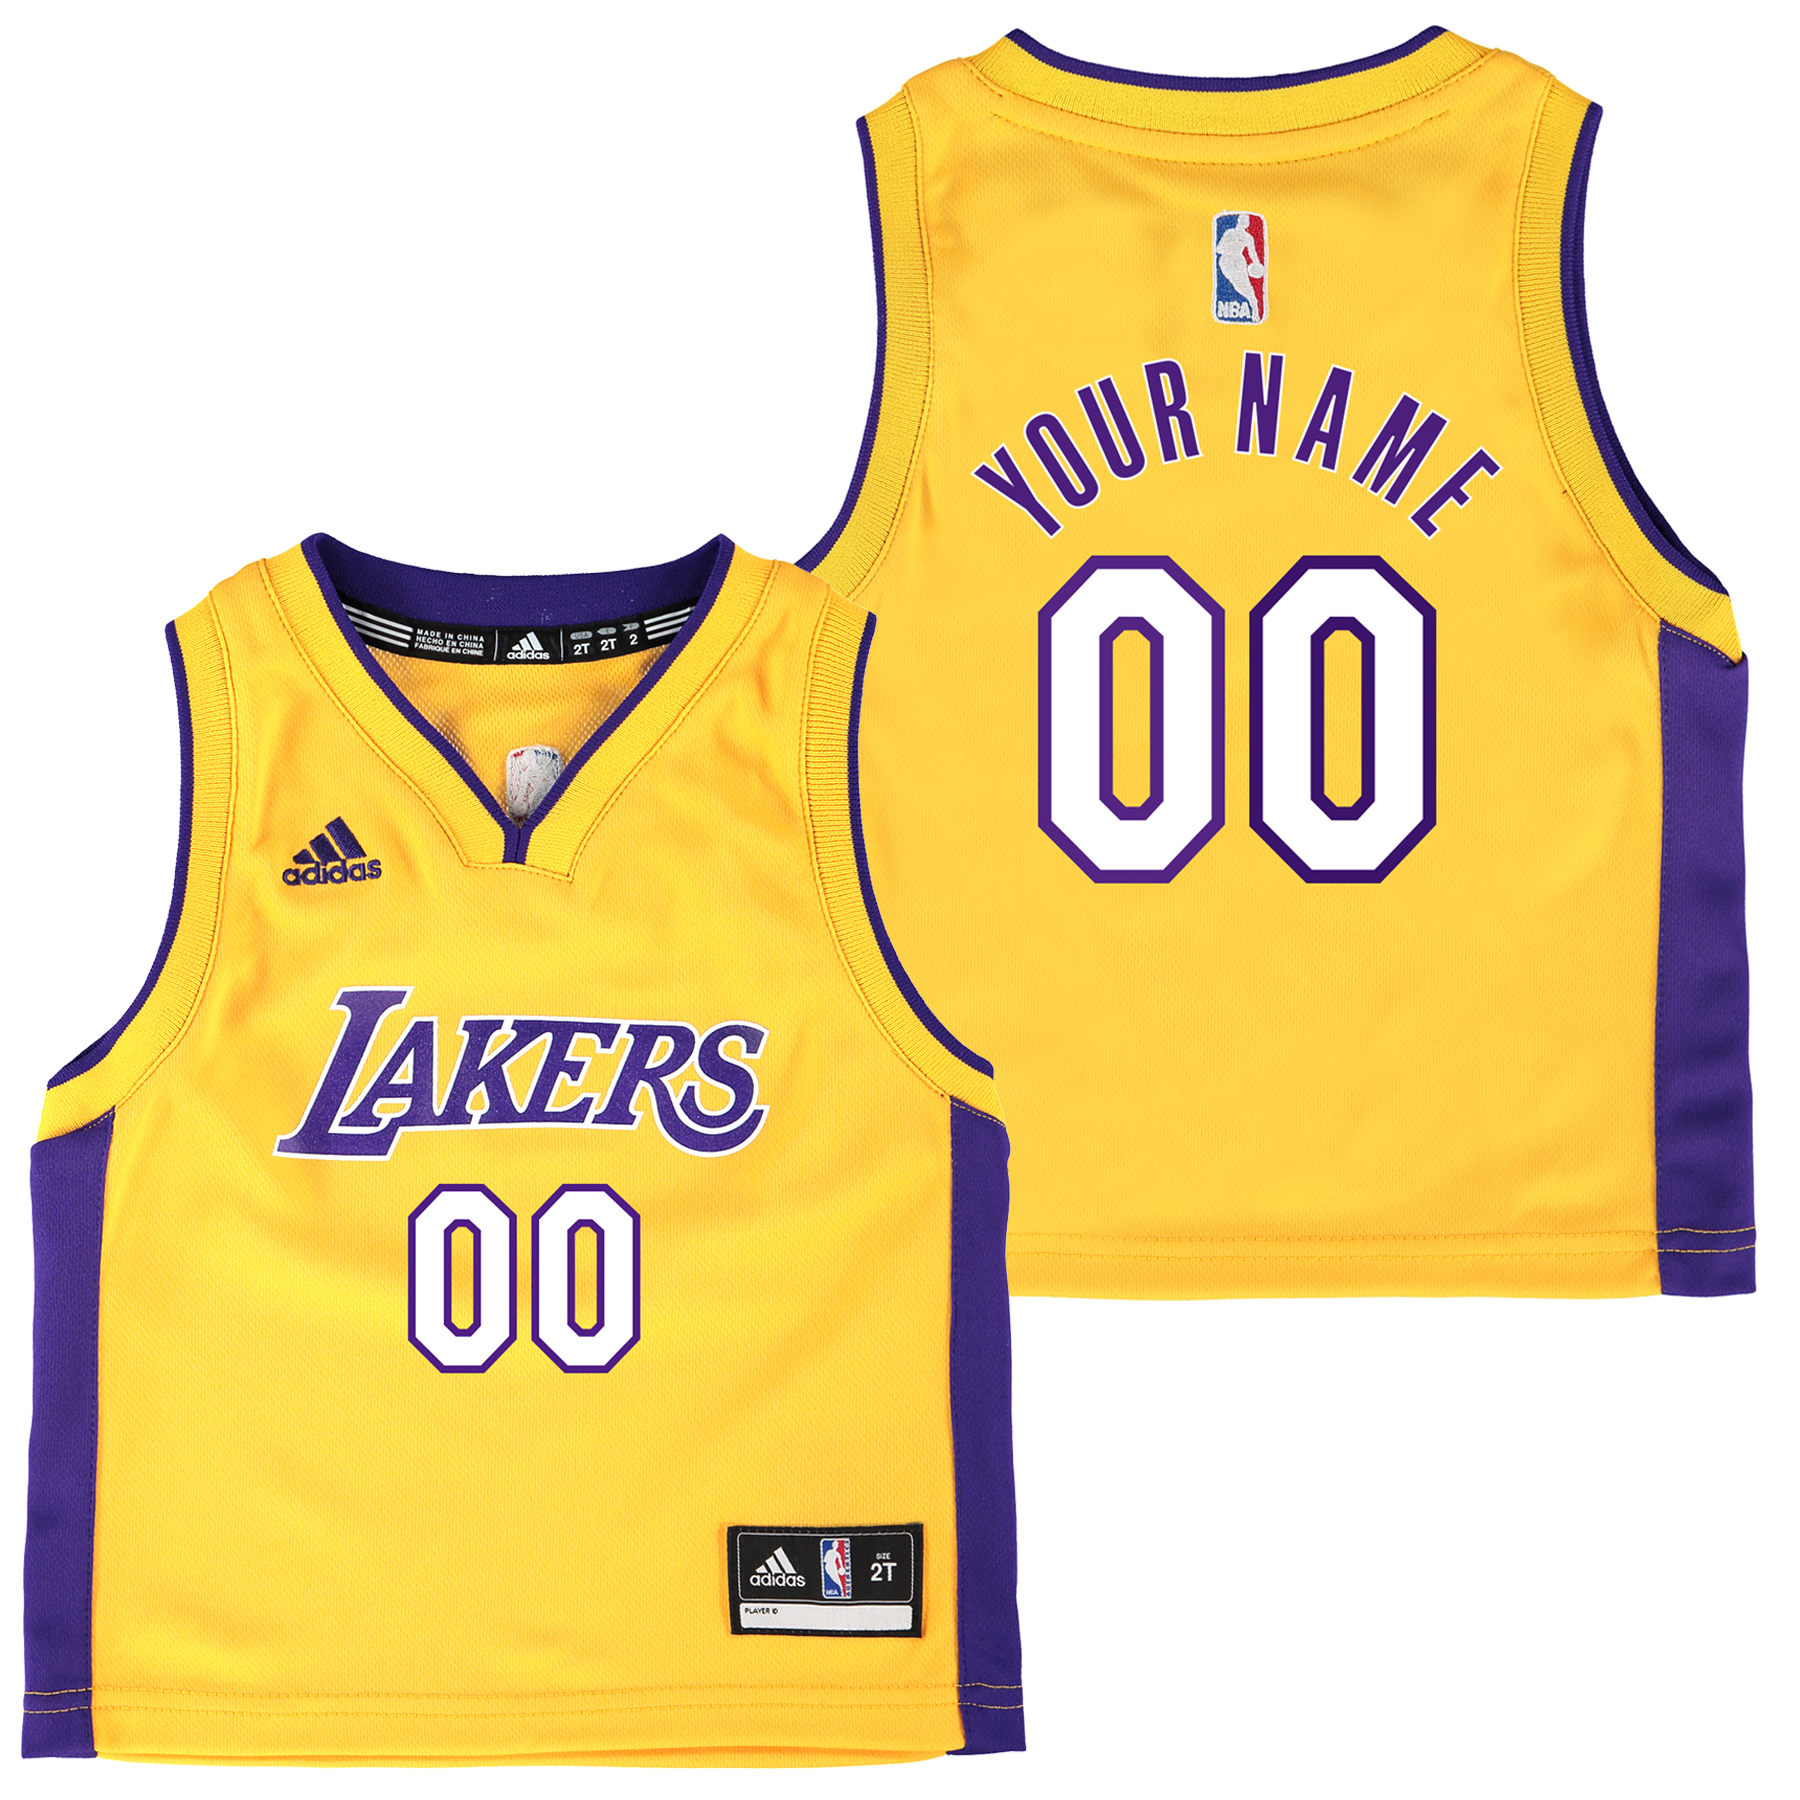 Los Angeles Lakers Home Replica Jersey - Custom - Toddler